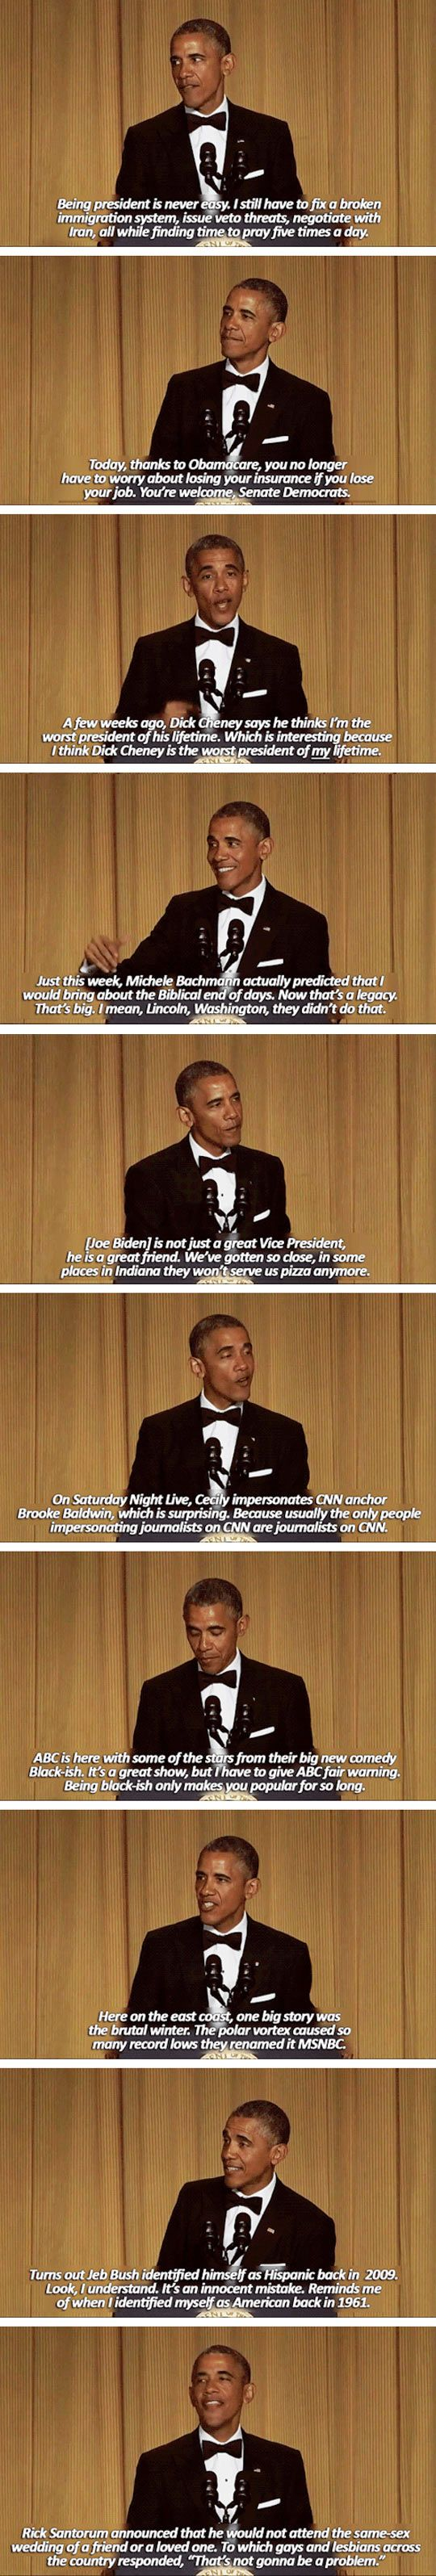 Sometimes I wonder if the White House Correspondent Dinner ~thing was even real